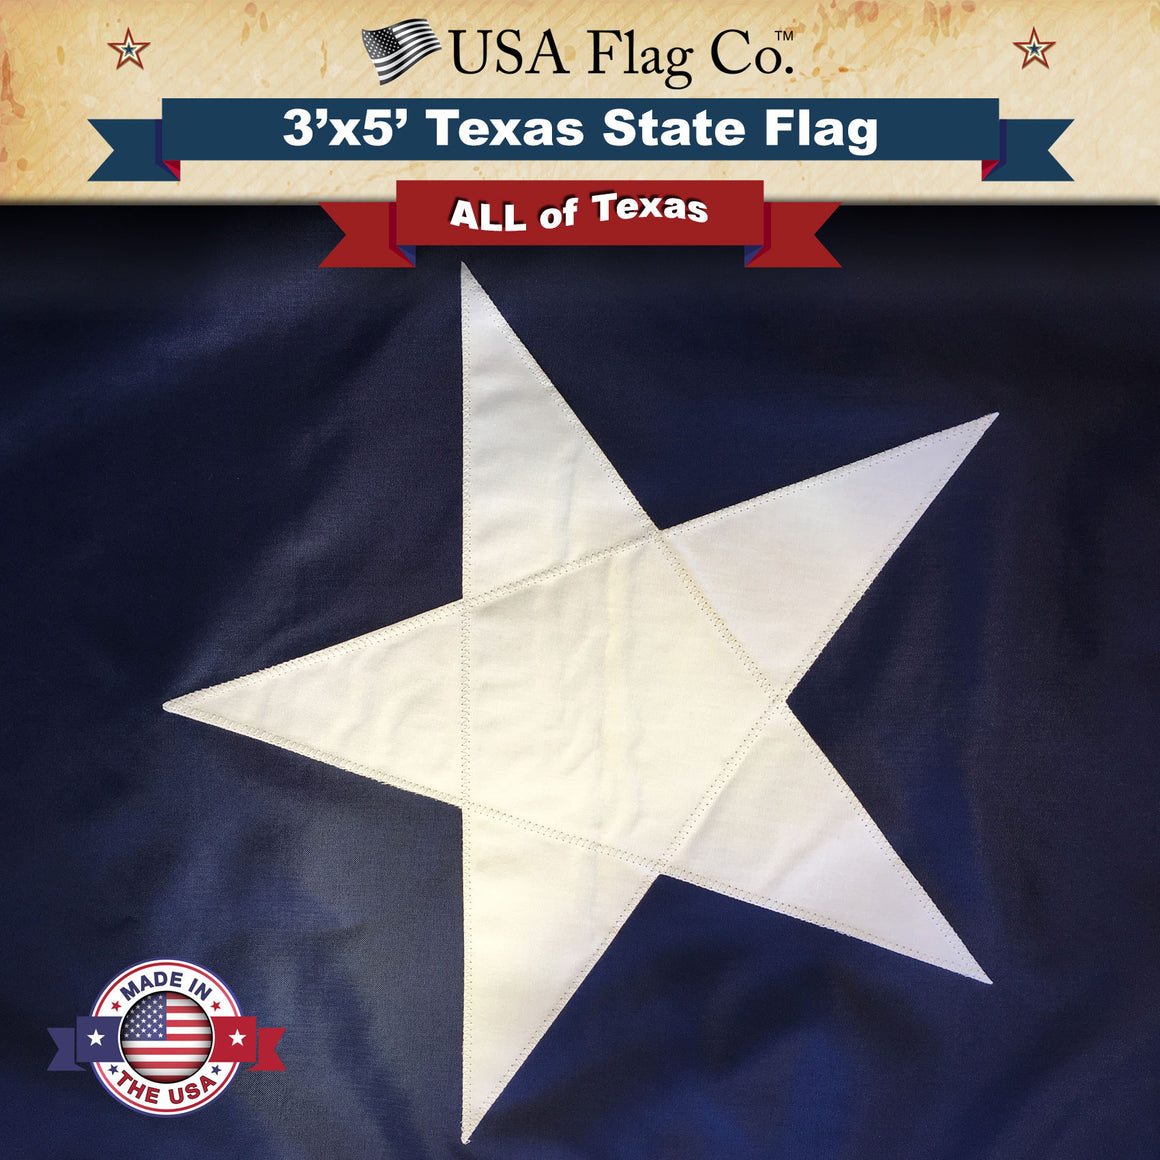 Texas State Flag - The Lone Star Flag